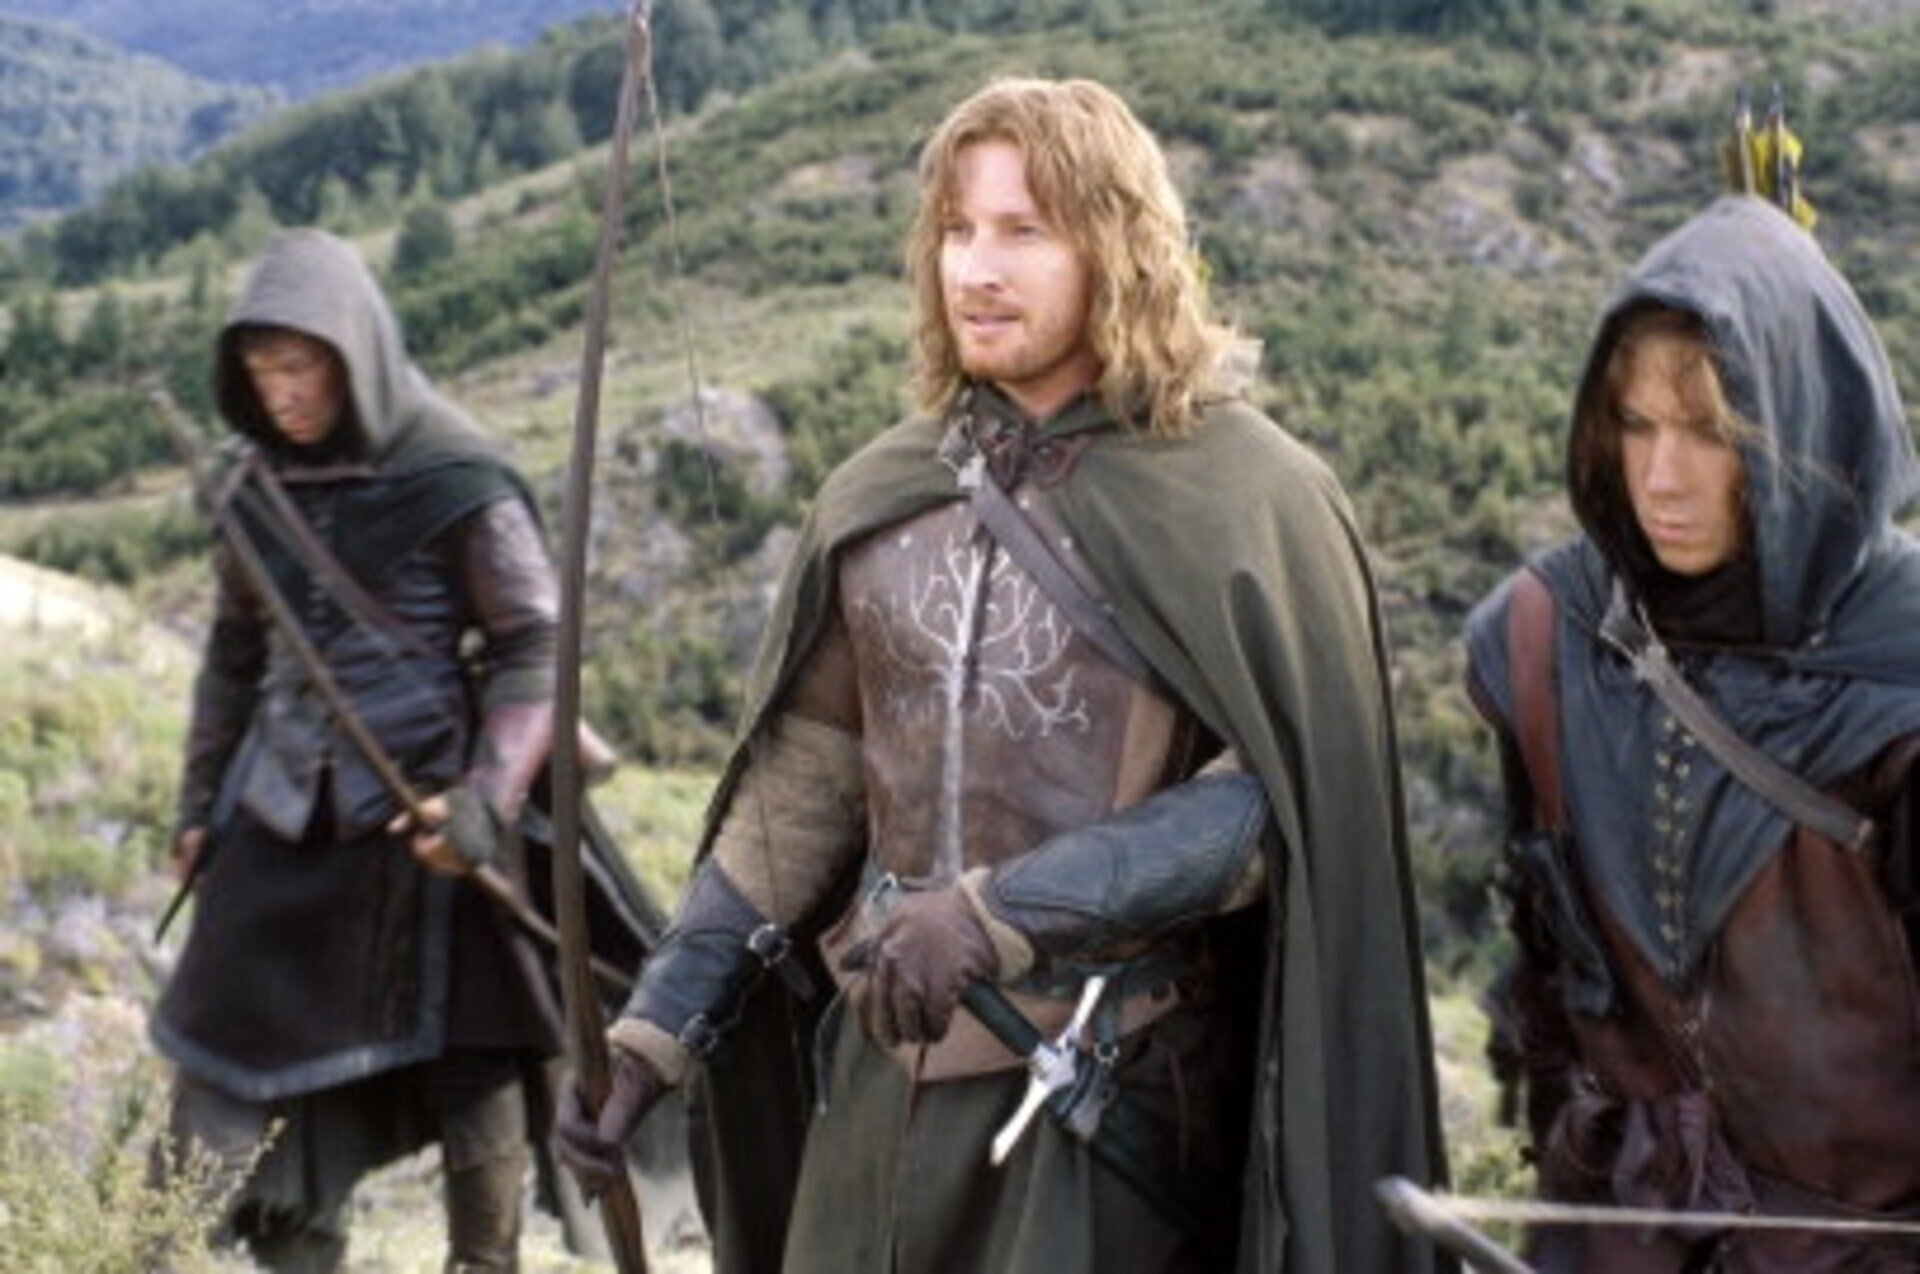 The Lord of the Rings: The Two Towers - Image 54